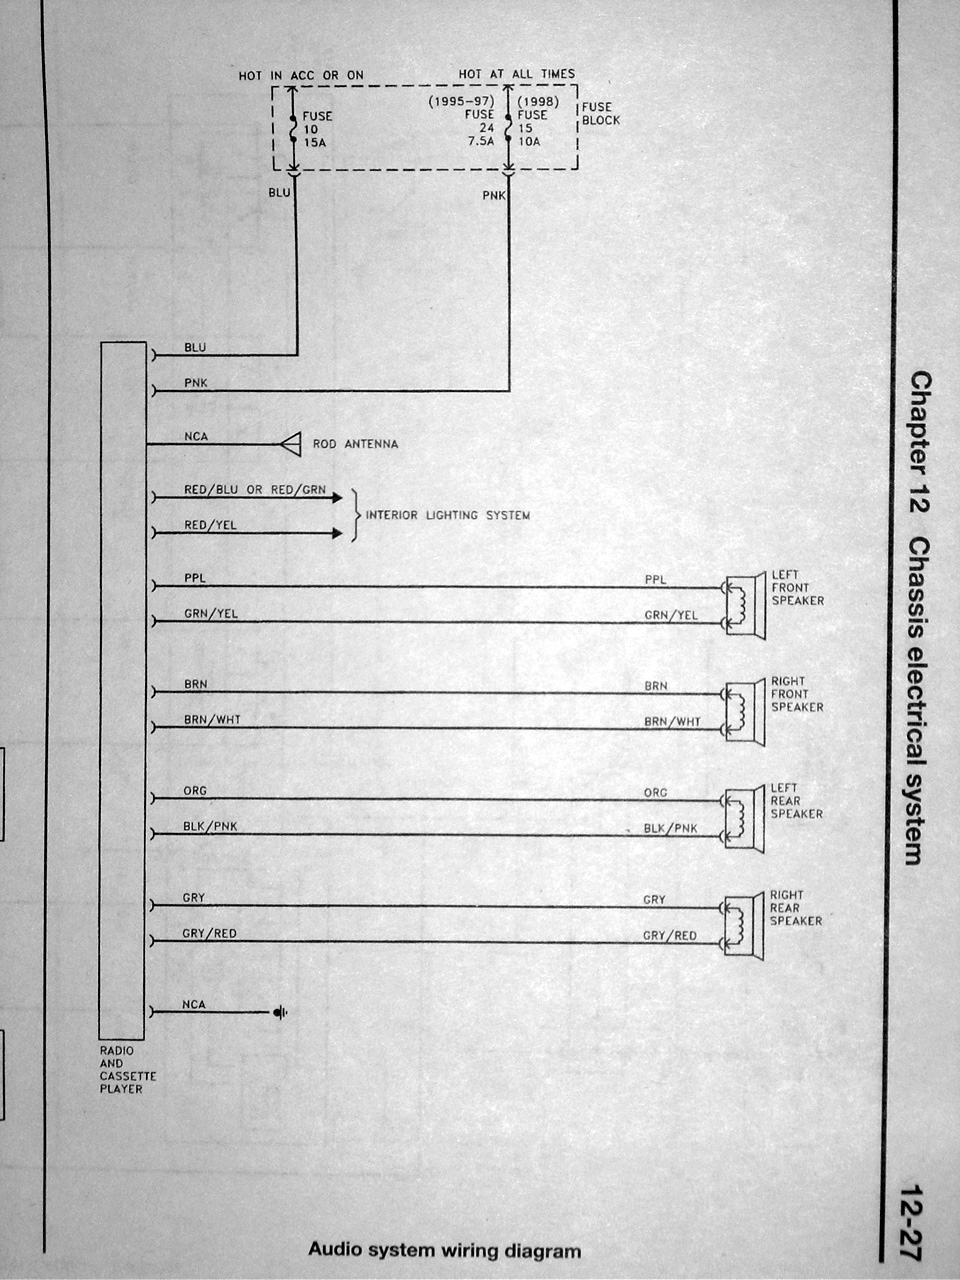 Wiring Diagram Thread *useful Info* Nissan Forum 2011 Nissan Rogue Wiring  Diagram 2006 Nissan Sentra Radio Wiring Diagrams